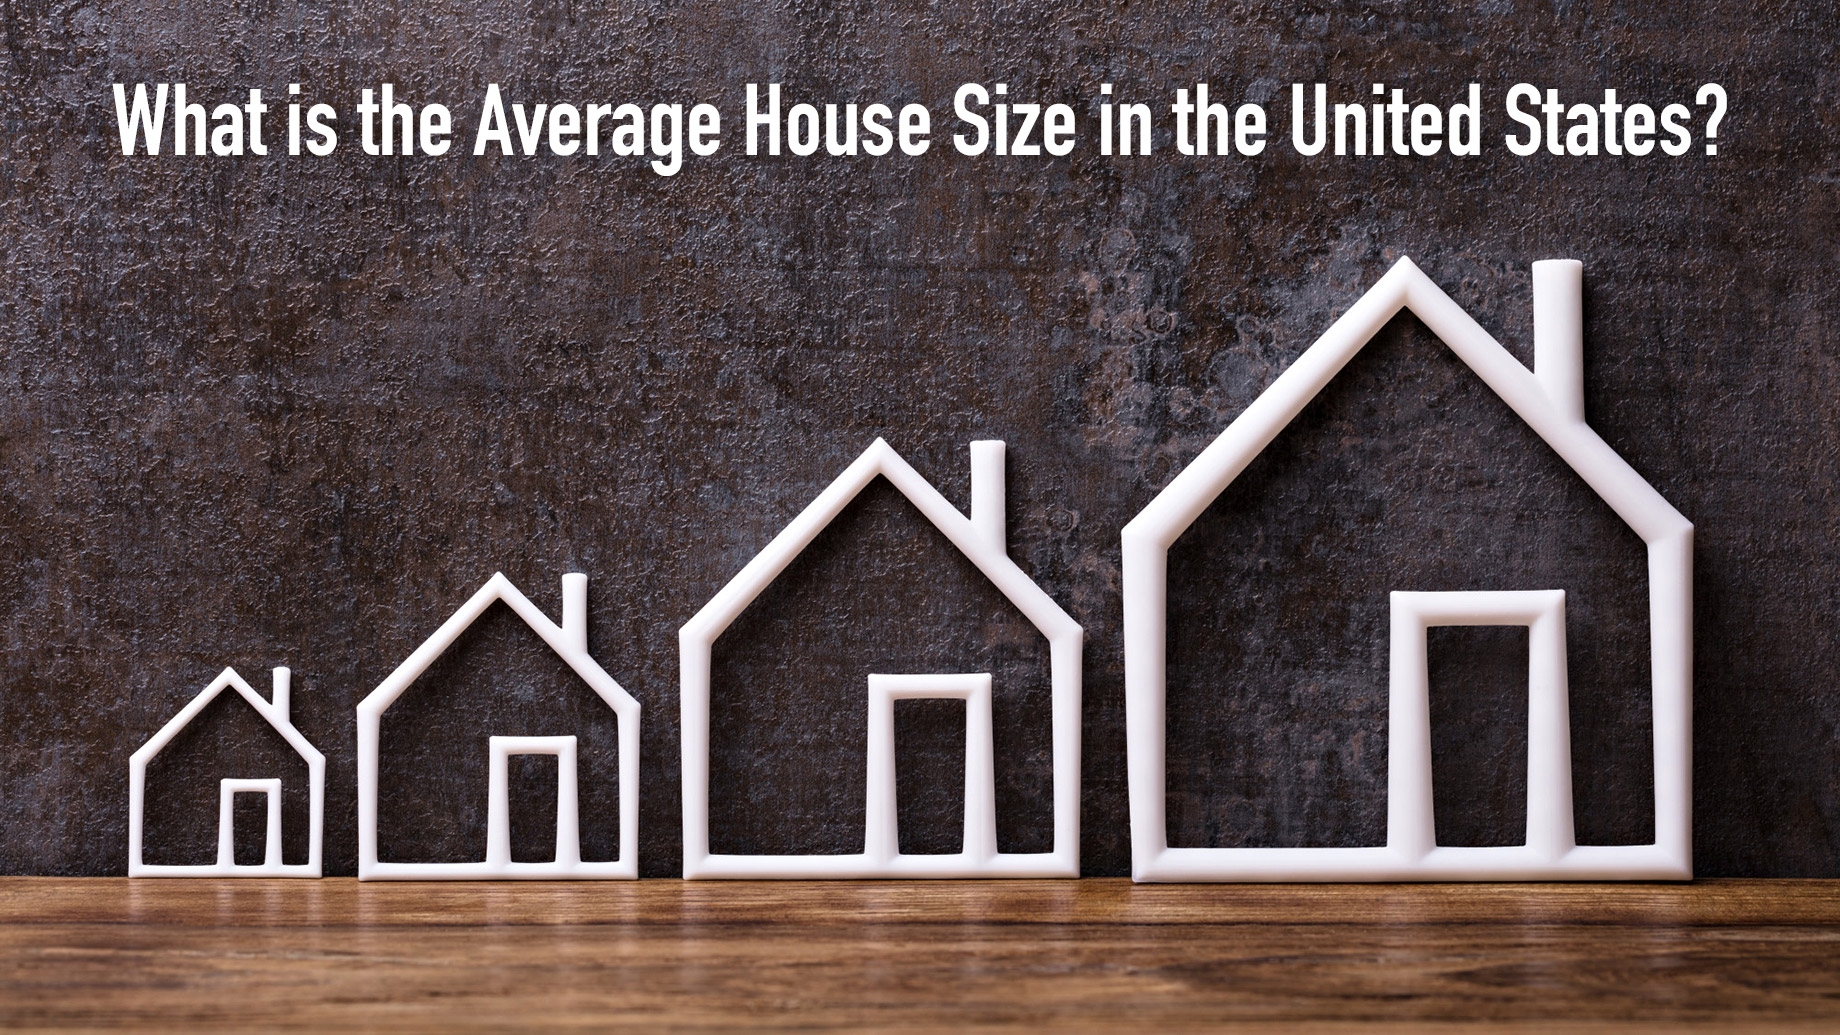 What is the Average House Size in the United States?